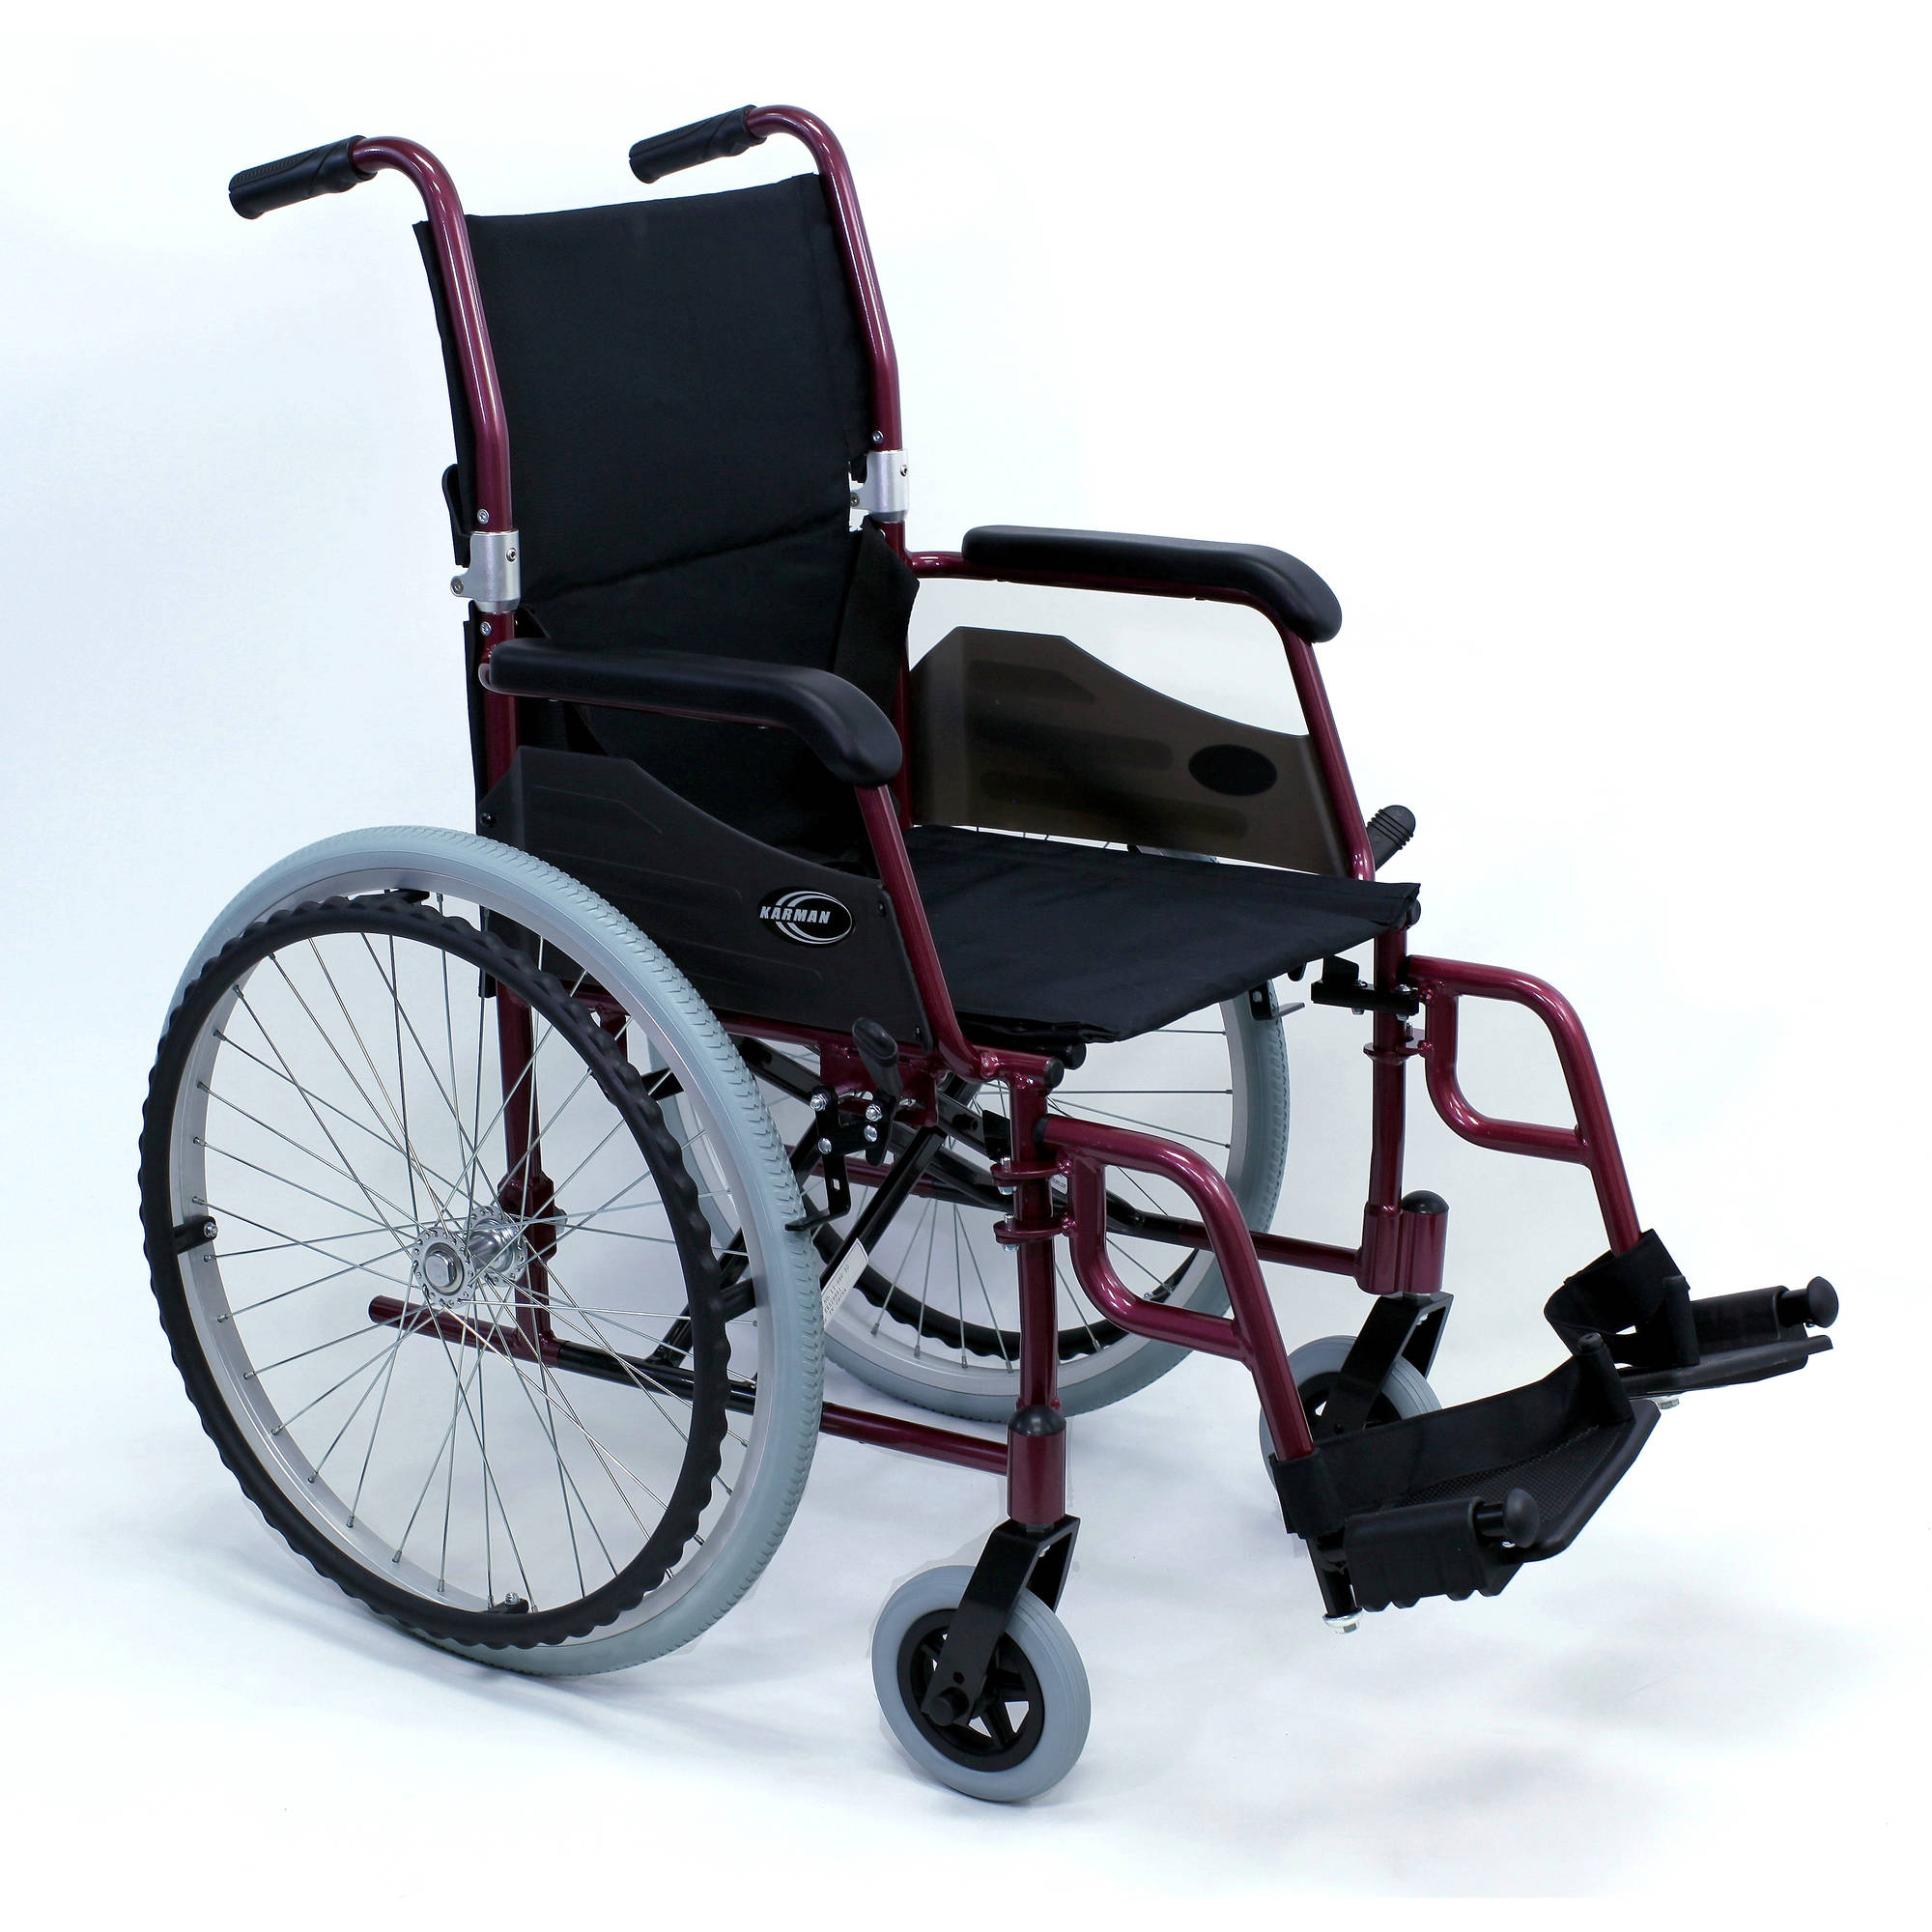 "Karman LT-980 24 pounds Lightweight Wheelchair, 18"" seat, Burgundy"